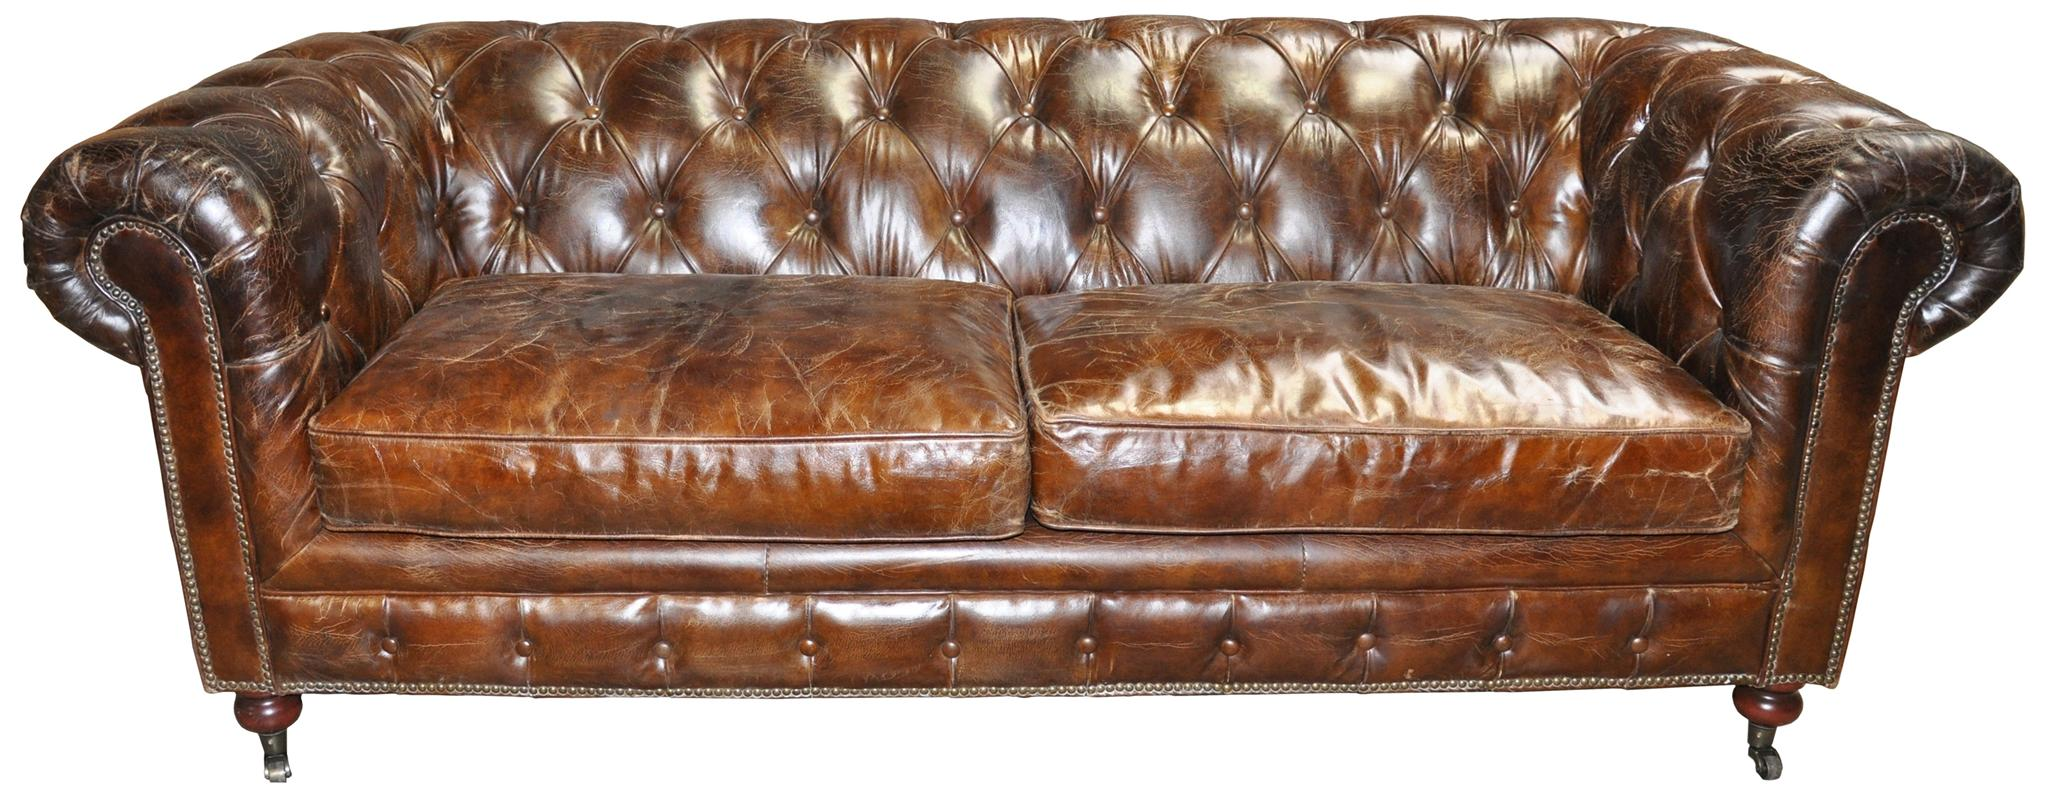 Epic Antique Leather Couch 46 On Living Room Sofa Ideas With Antique  Leather Couch